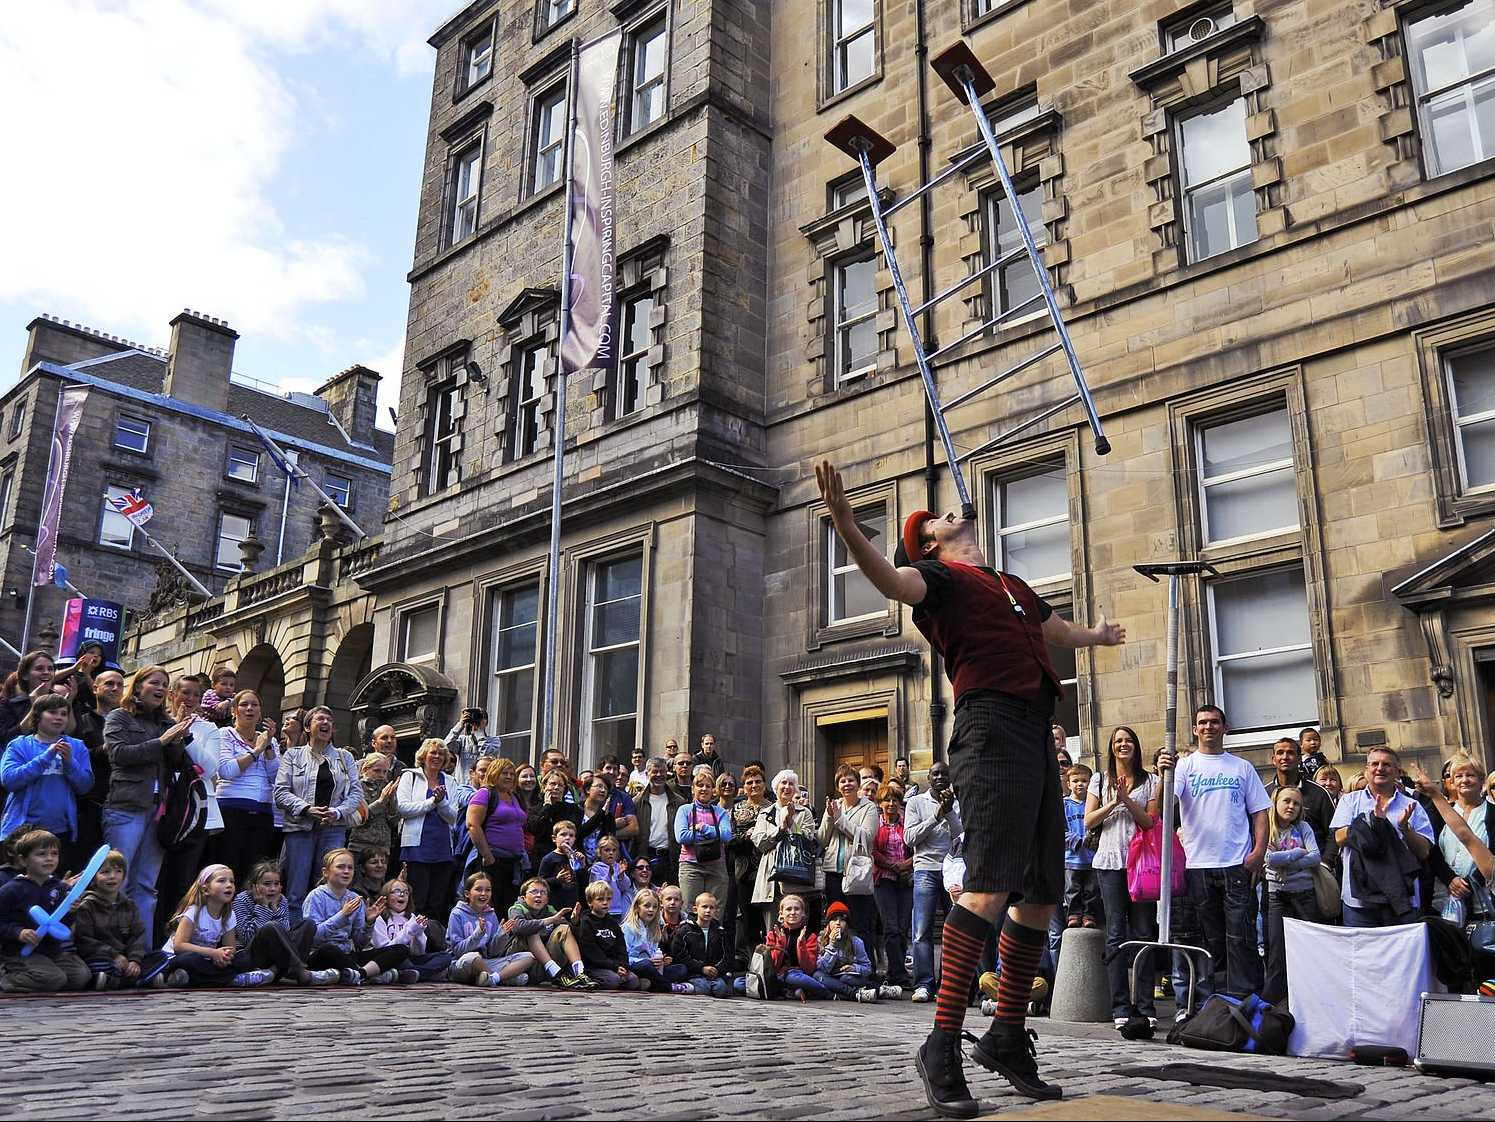 Catch a show at Scotland's Edinburgh Fringe Festival, the world's largest arts festival.